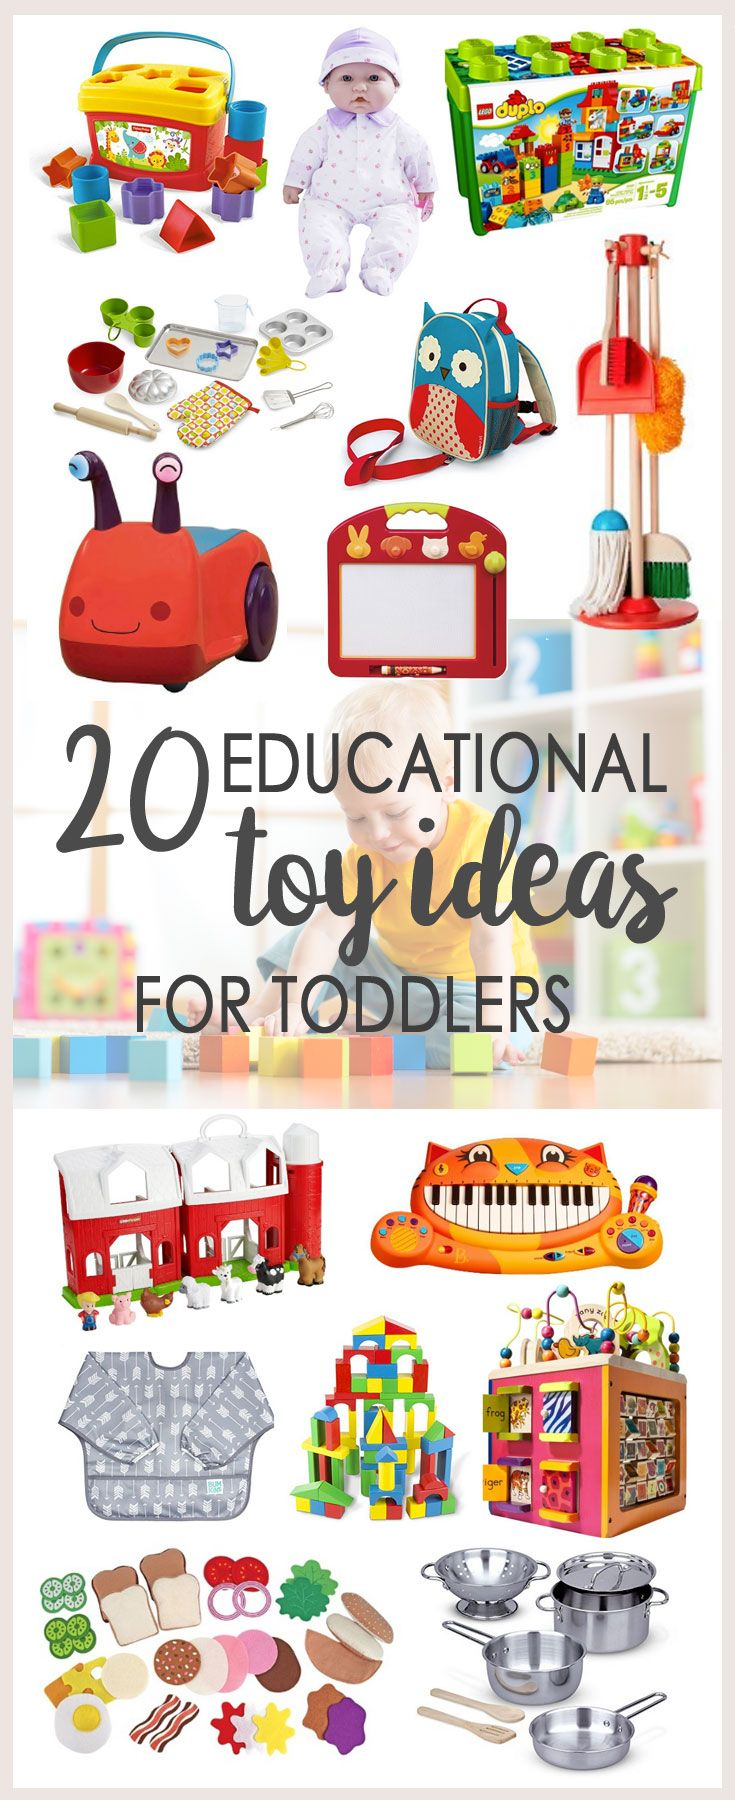 Toys For Tots Ideas : Unique toddler gifts ideas on pinterest diy toys for